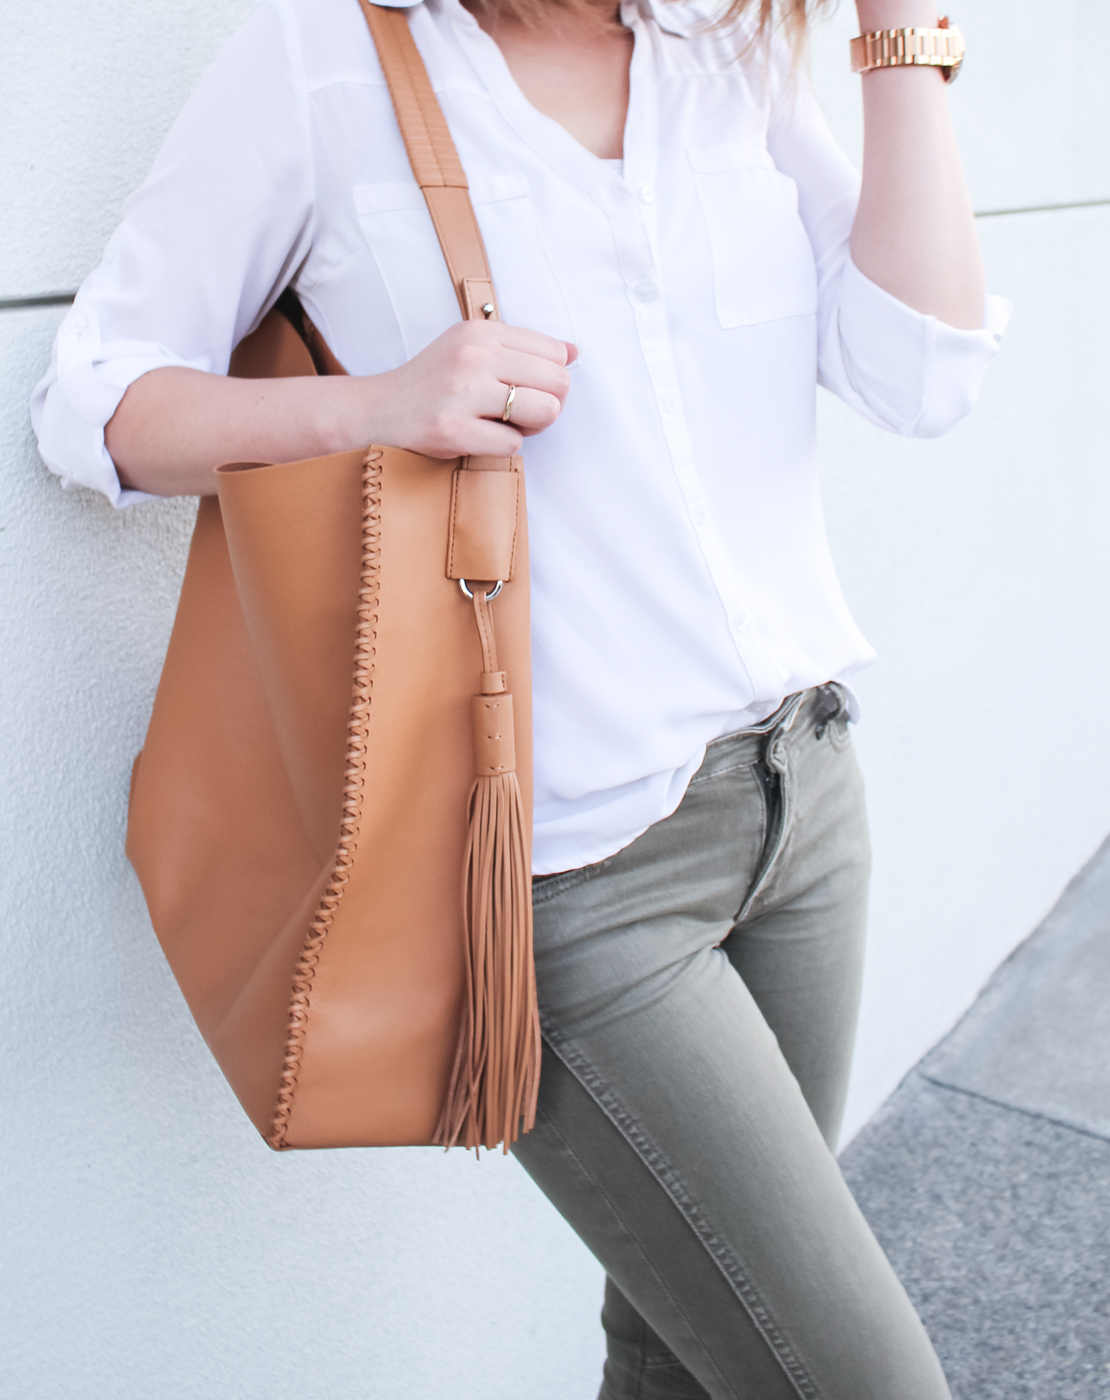 All Saints Paradise 'North/South' Leather Tote | The Chic Diary